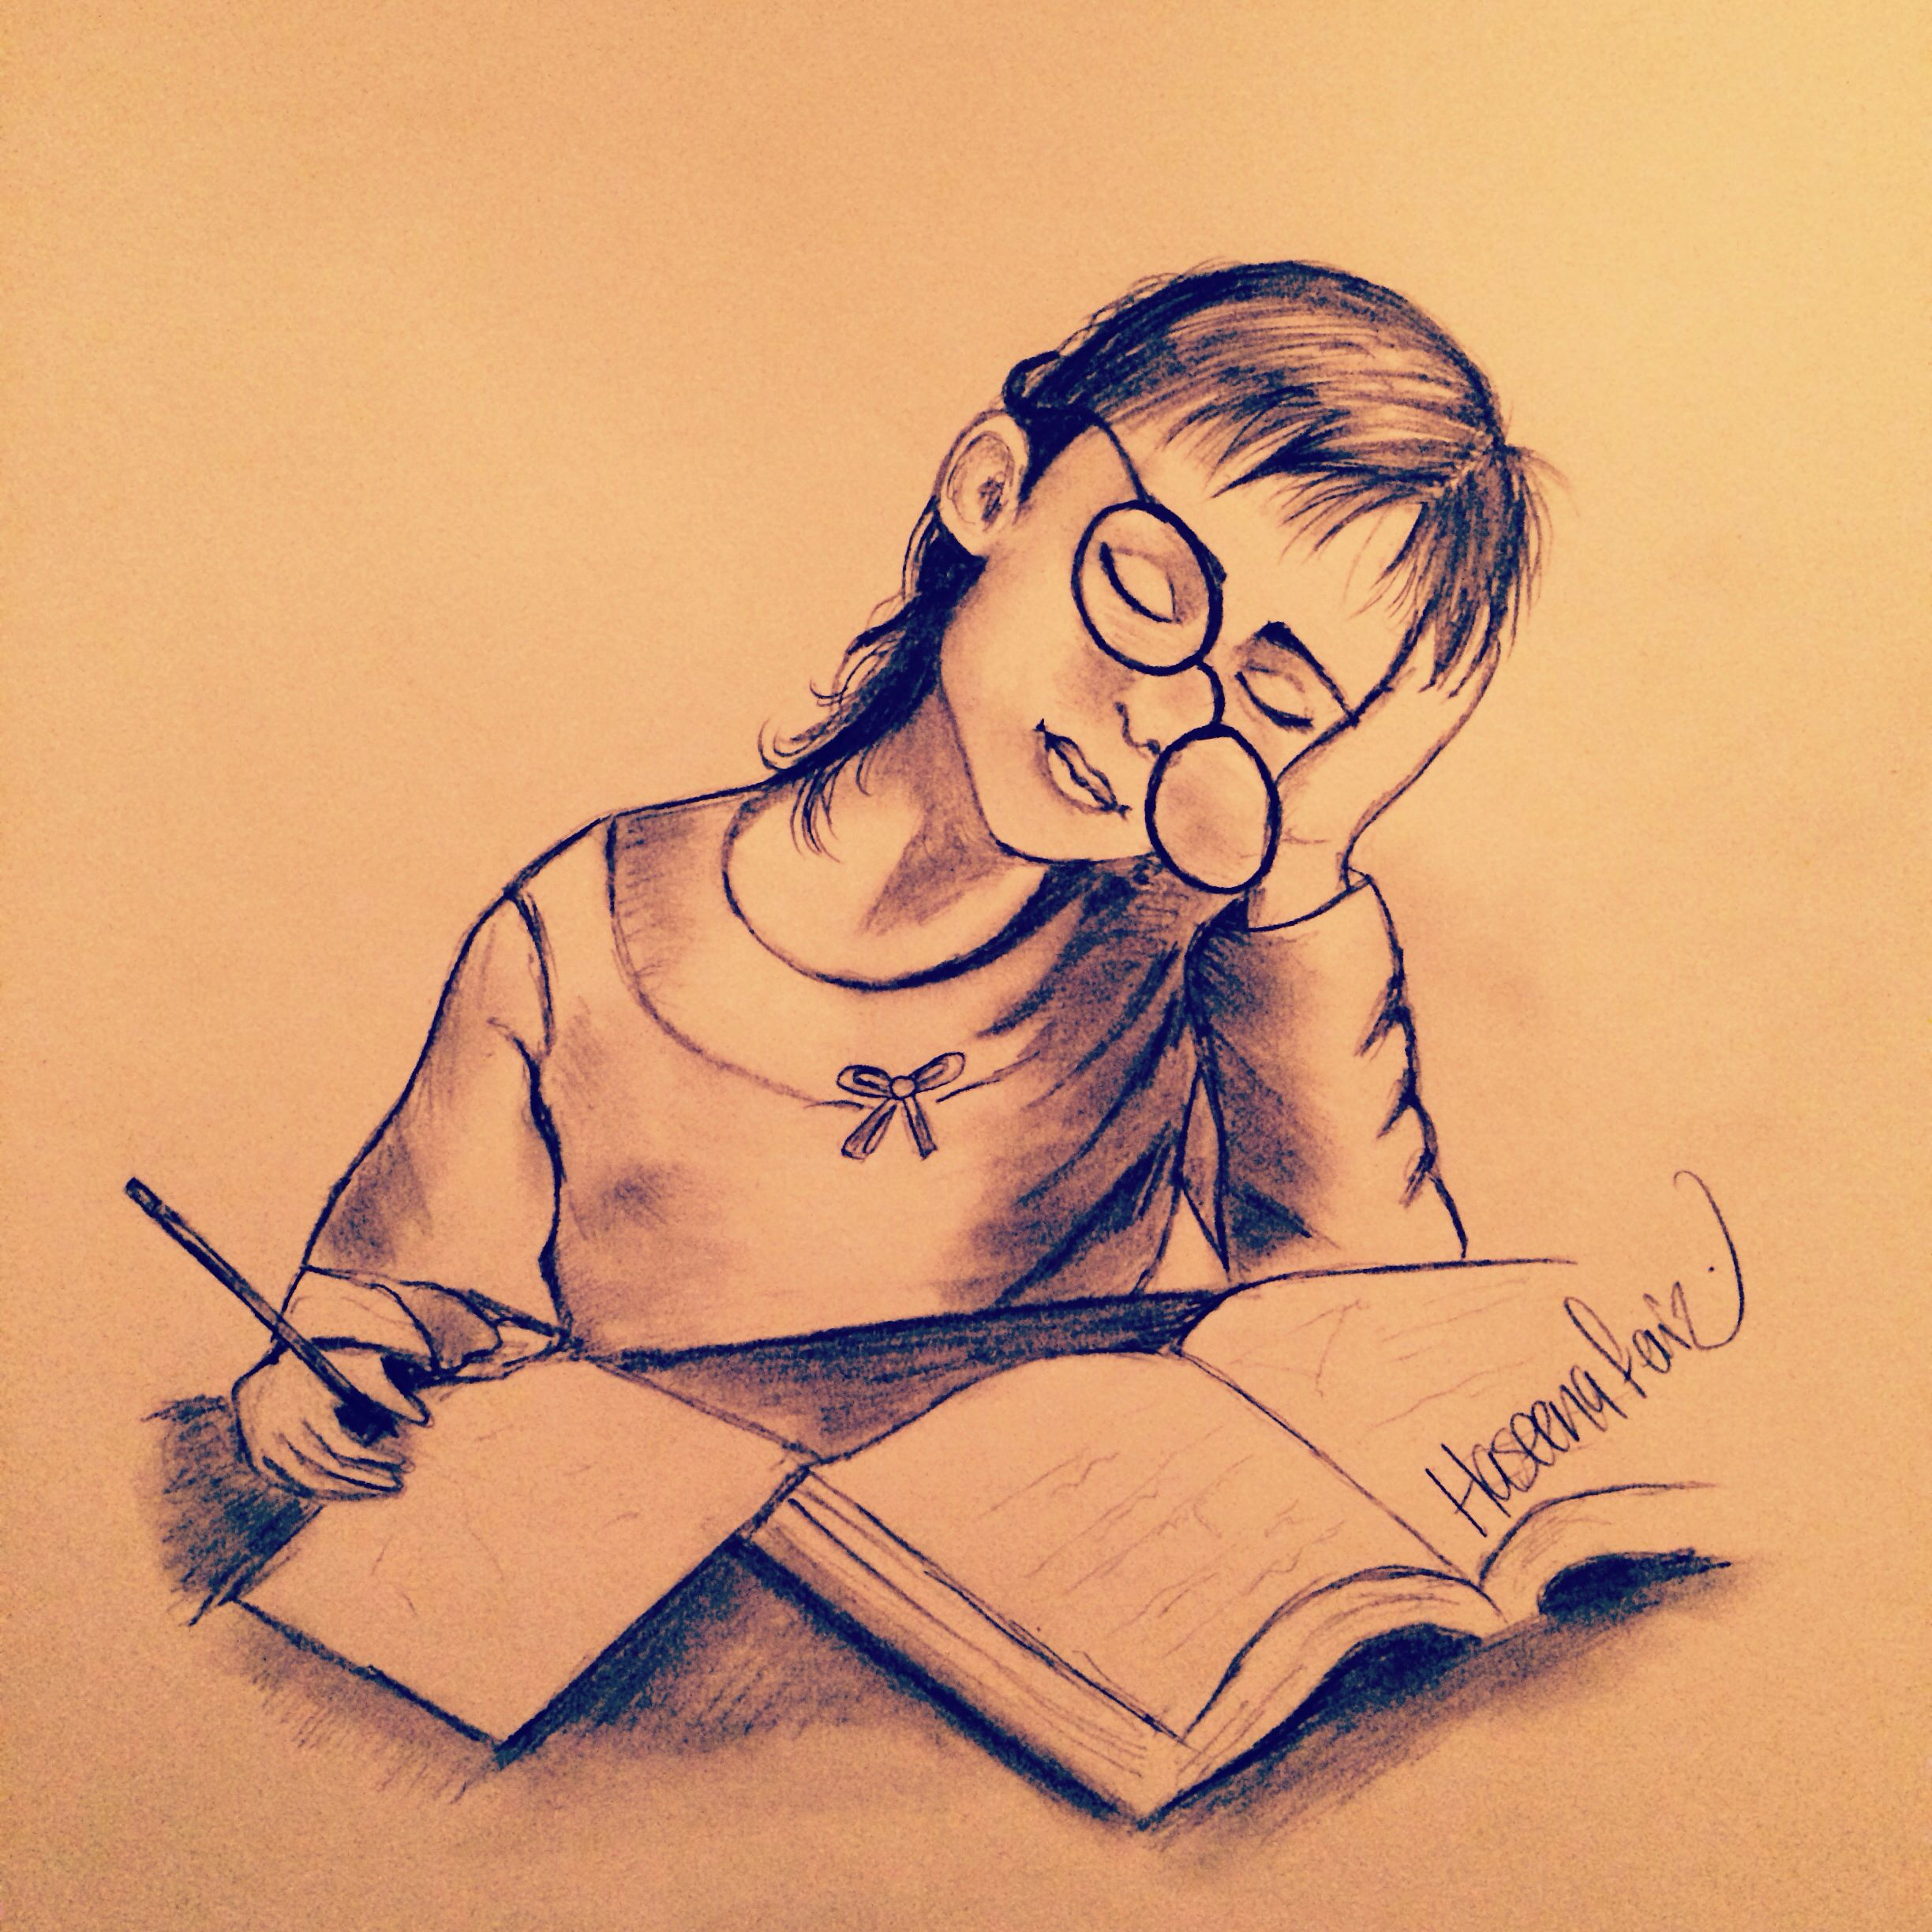 Drawing art work study time finals drawing by haseena faiz drawing art work study time finals drawing by haseena faiz thecheapjerseys Gallery